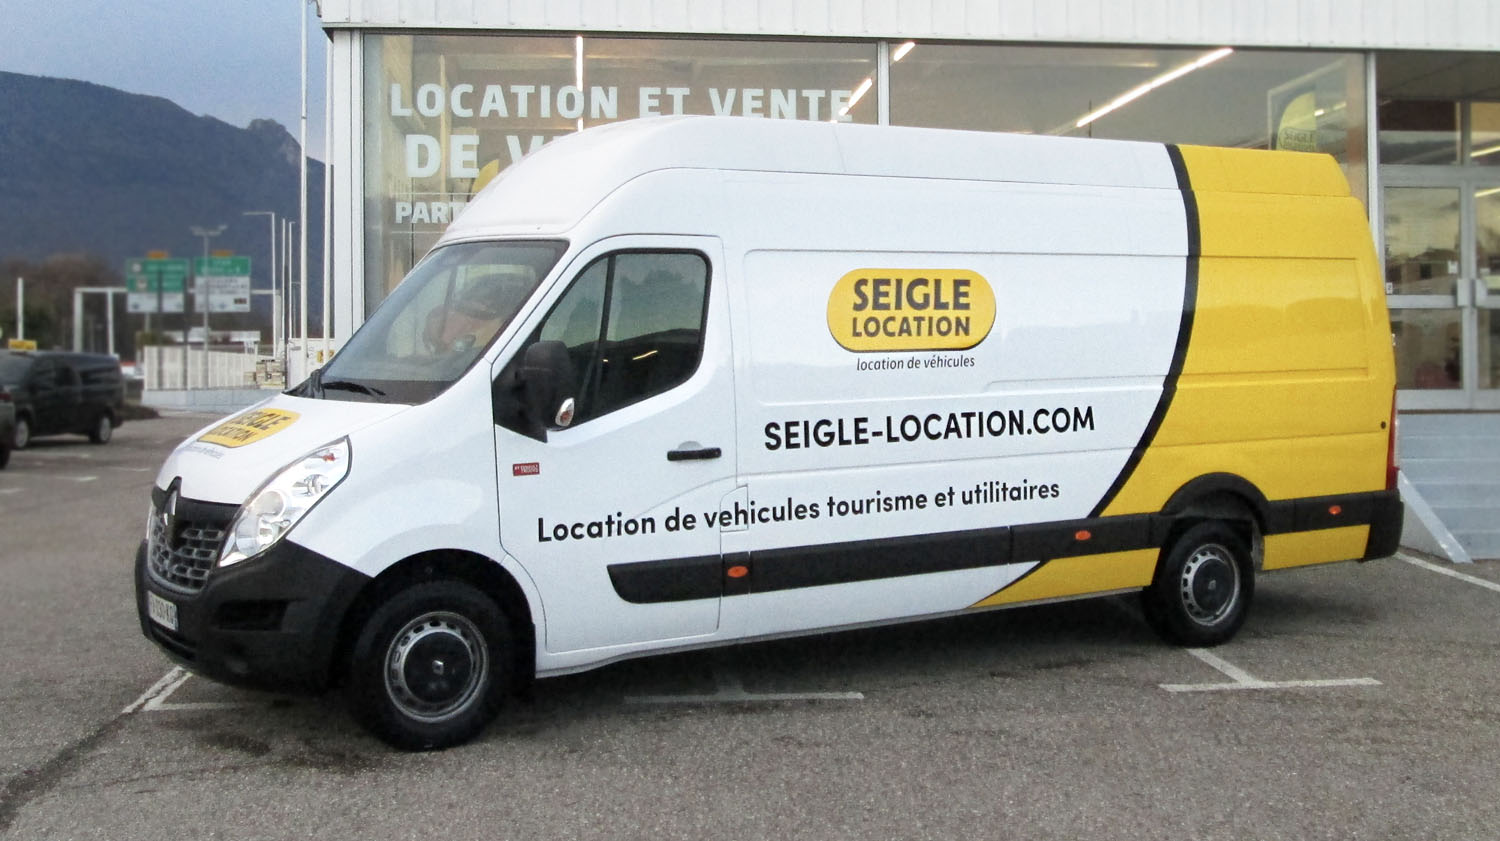 SEIGLE-LOCATION-Fourgon-2m3-14m3-16m3